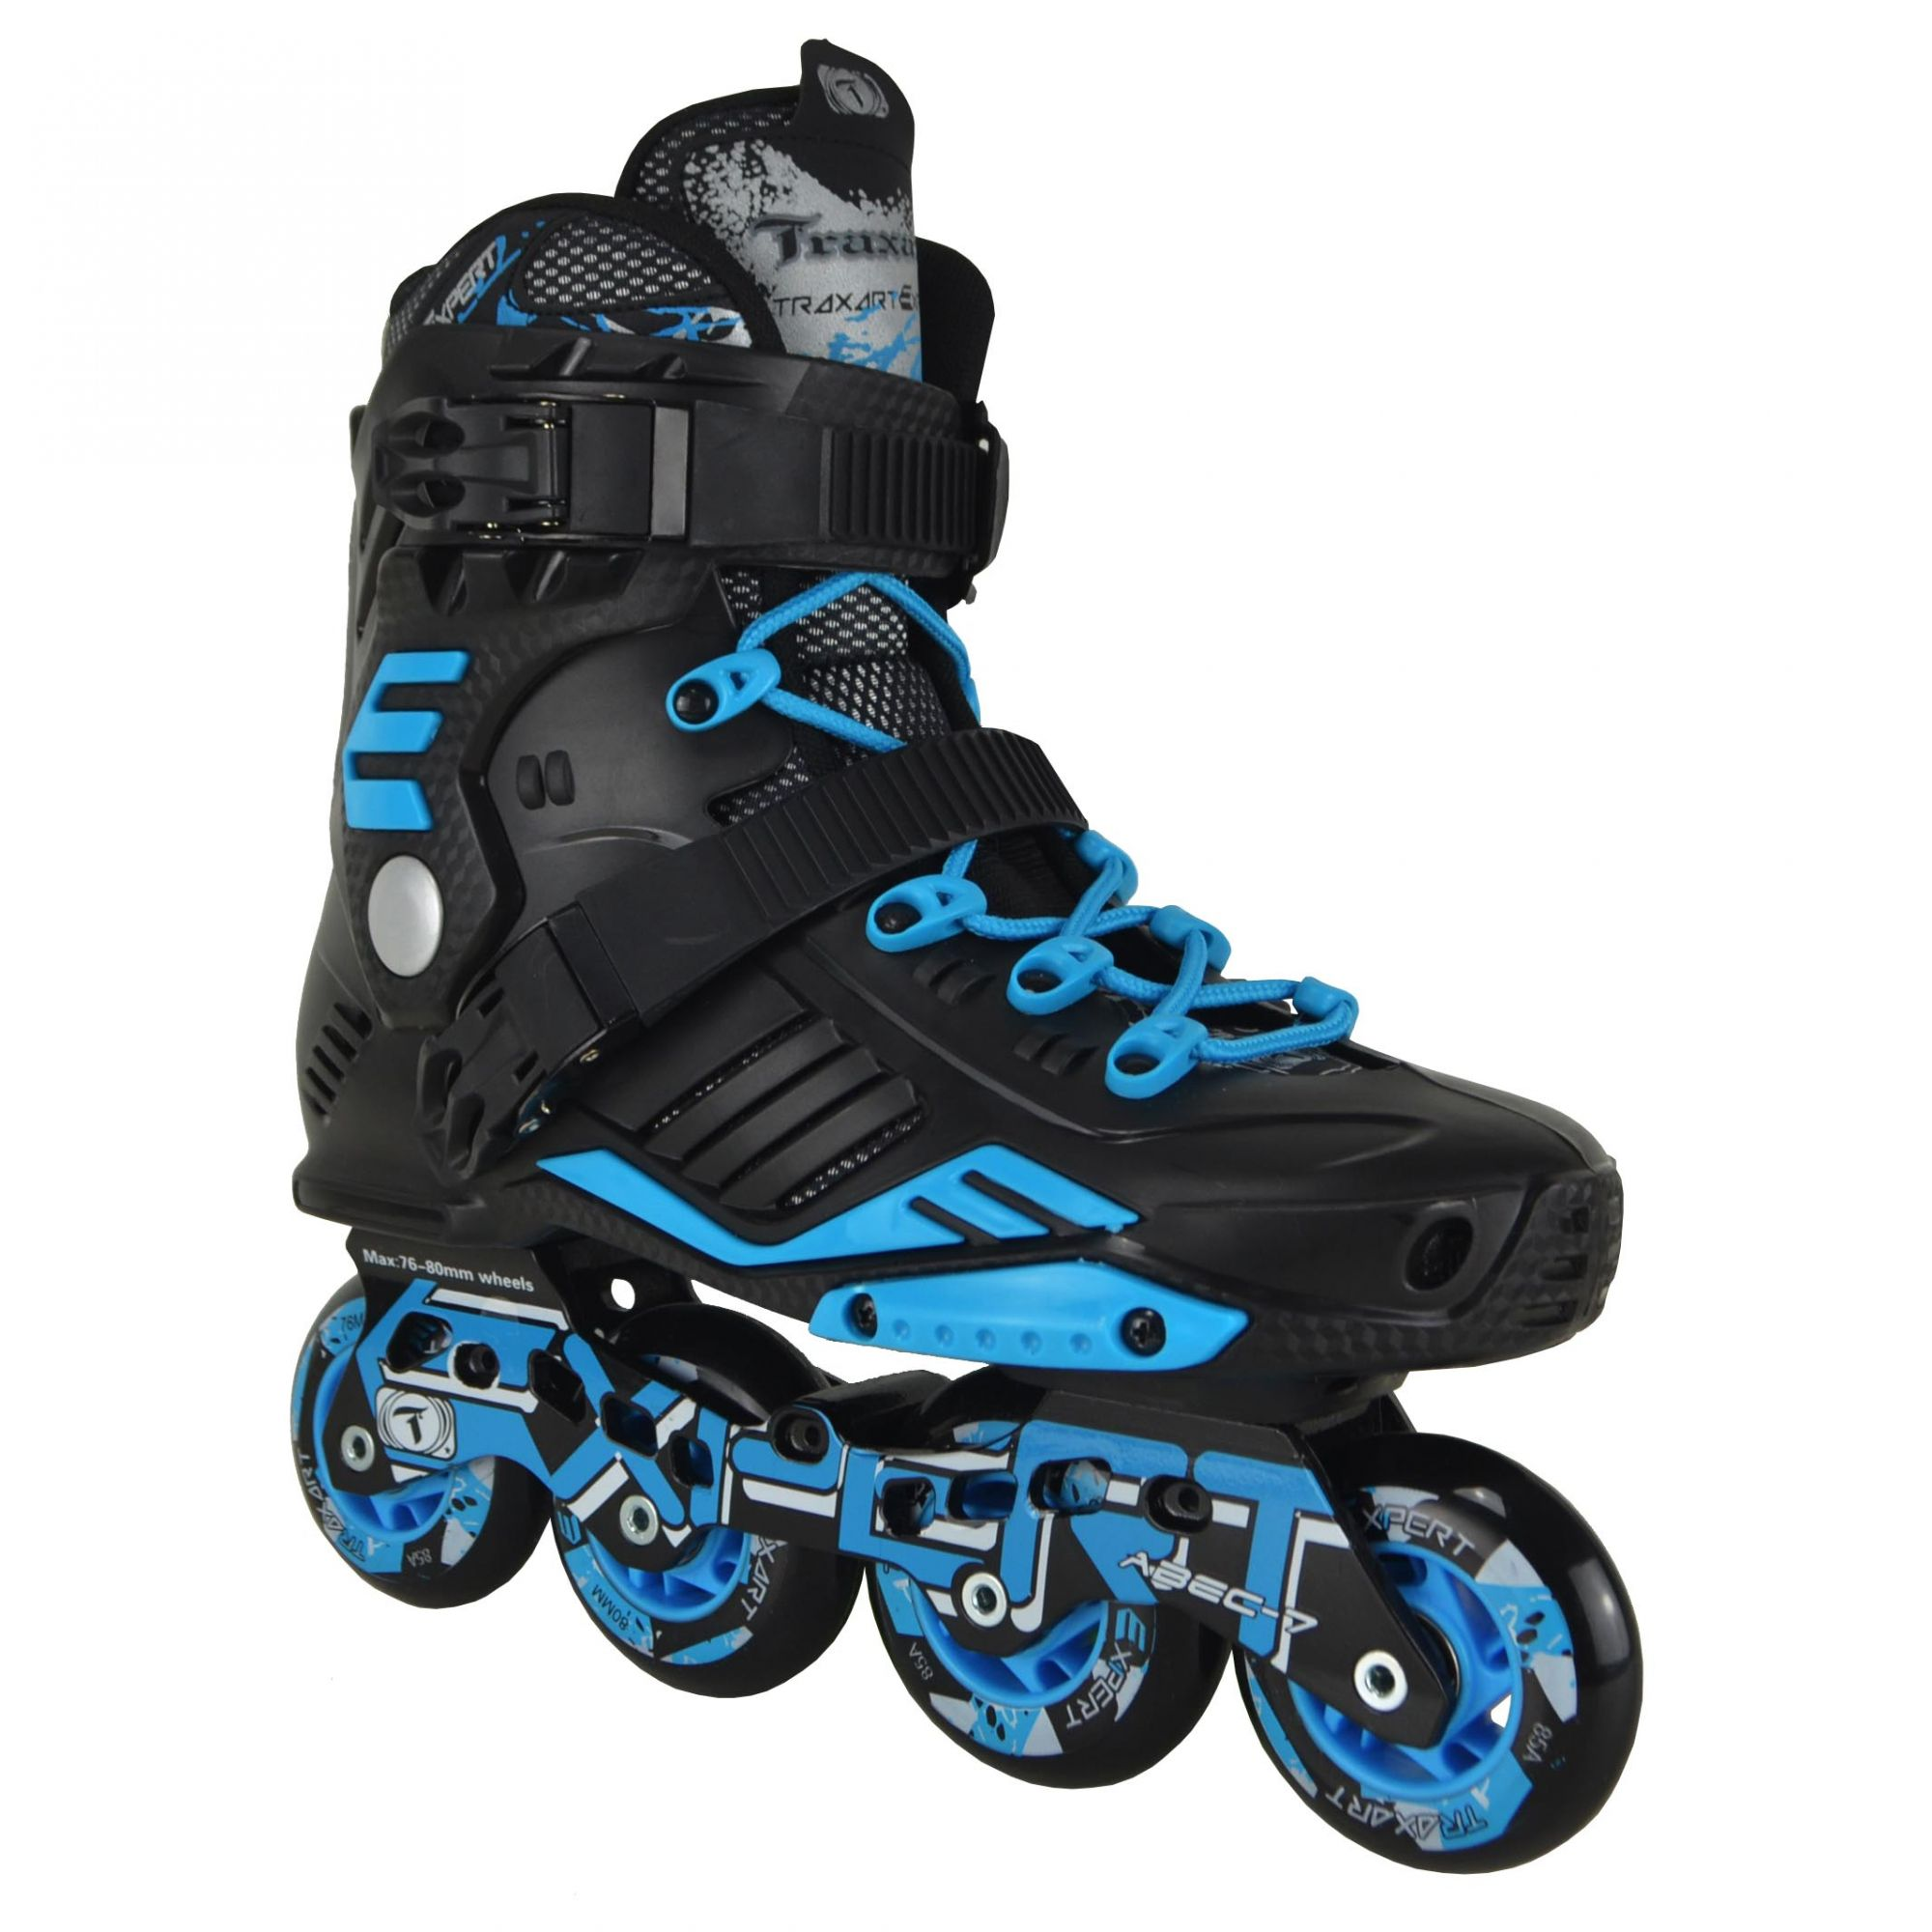 Patins Traxart Freestyle Expert - Rodas 72x76mm/76x80mm ABEC-7 Cromo